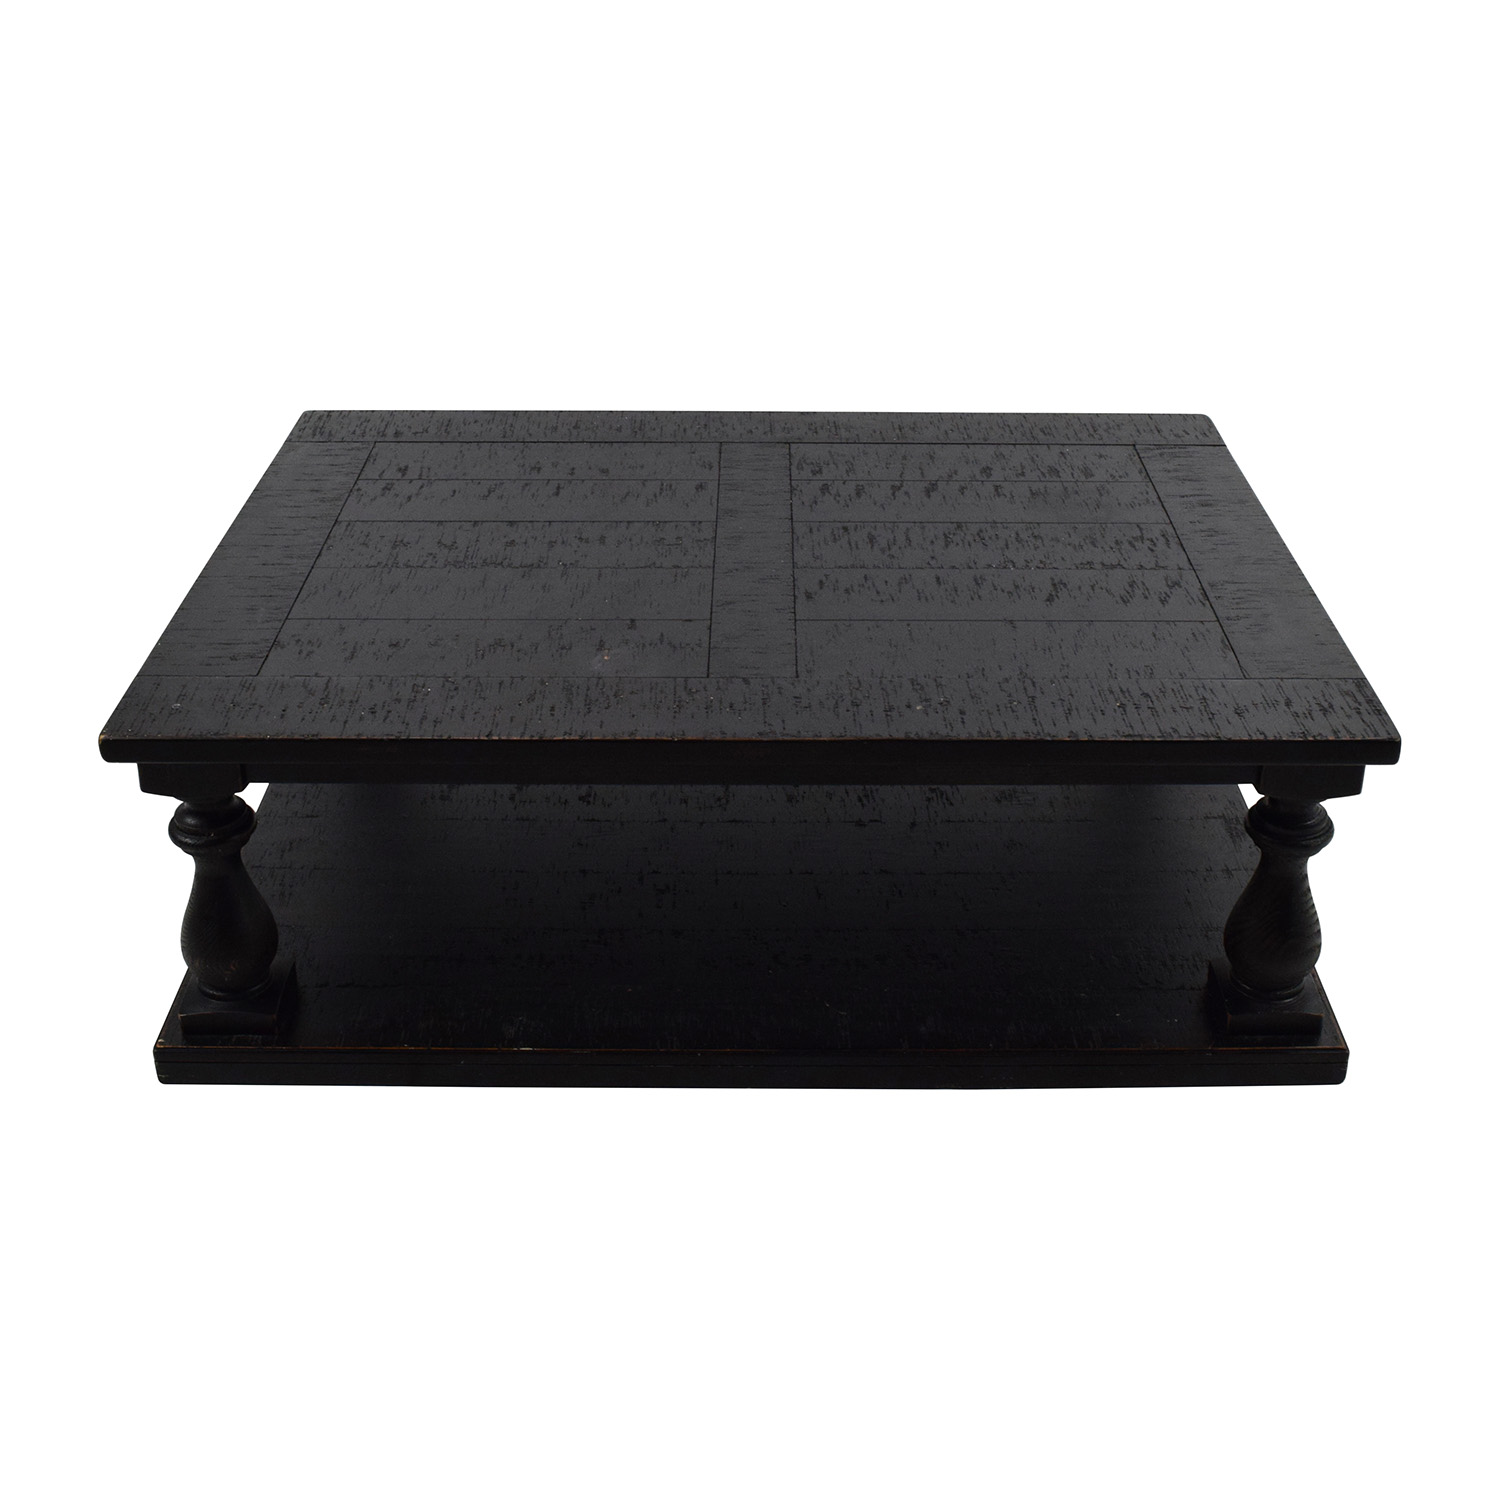 Room Coffee End Tables Ashley Furniture Baybrin Sofa Table - Buy ashley furniture mallacar coffee table ashley furniture coffee tables